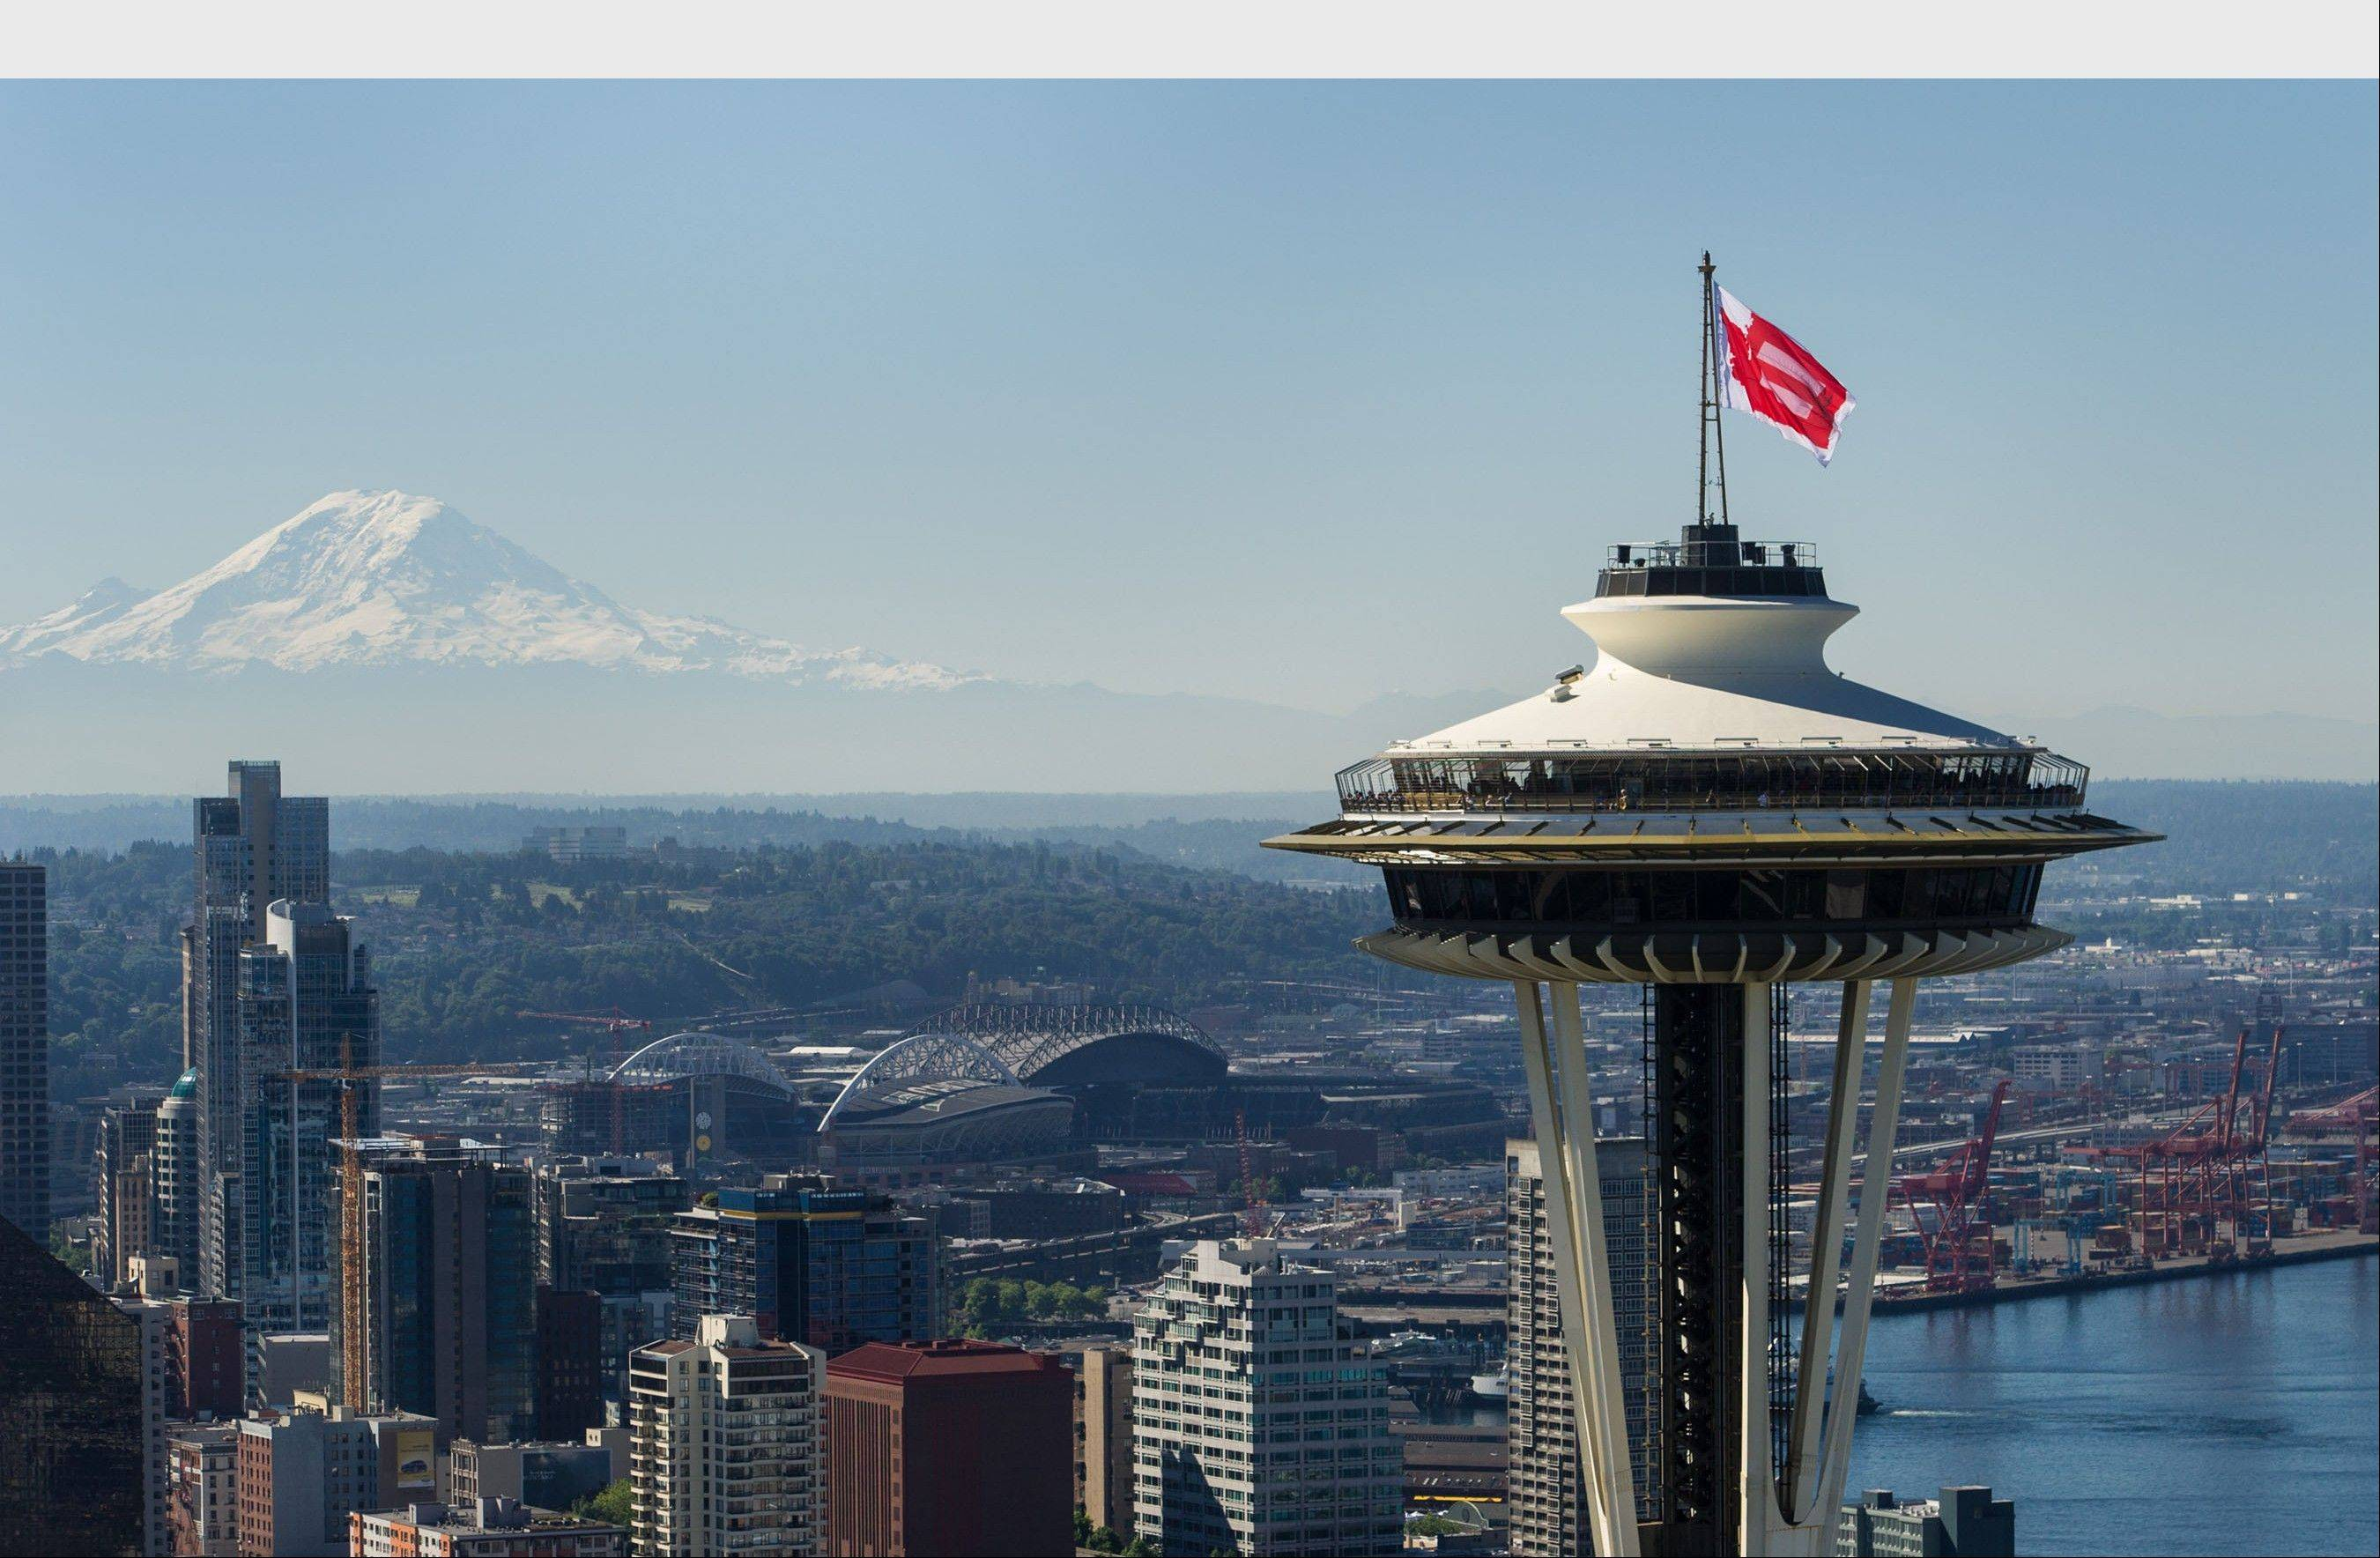 The Space Needle flies Marriage Equality flag atop the iconic landmark to celebrate Marriage Equality, Pride, Seattle and Washington State's role in bringing about monumental change for human and civil rights. (PRNewsFoto/Space Needle)